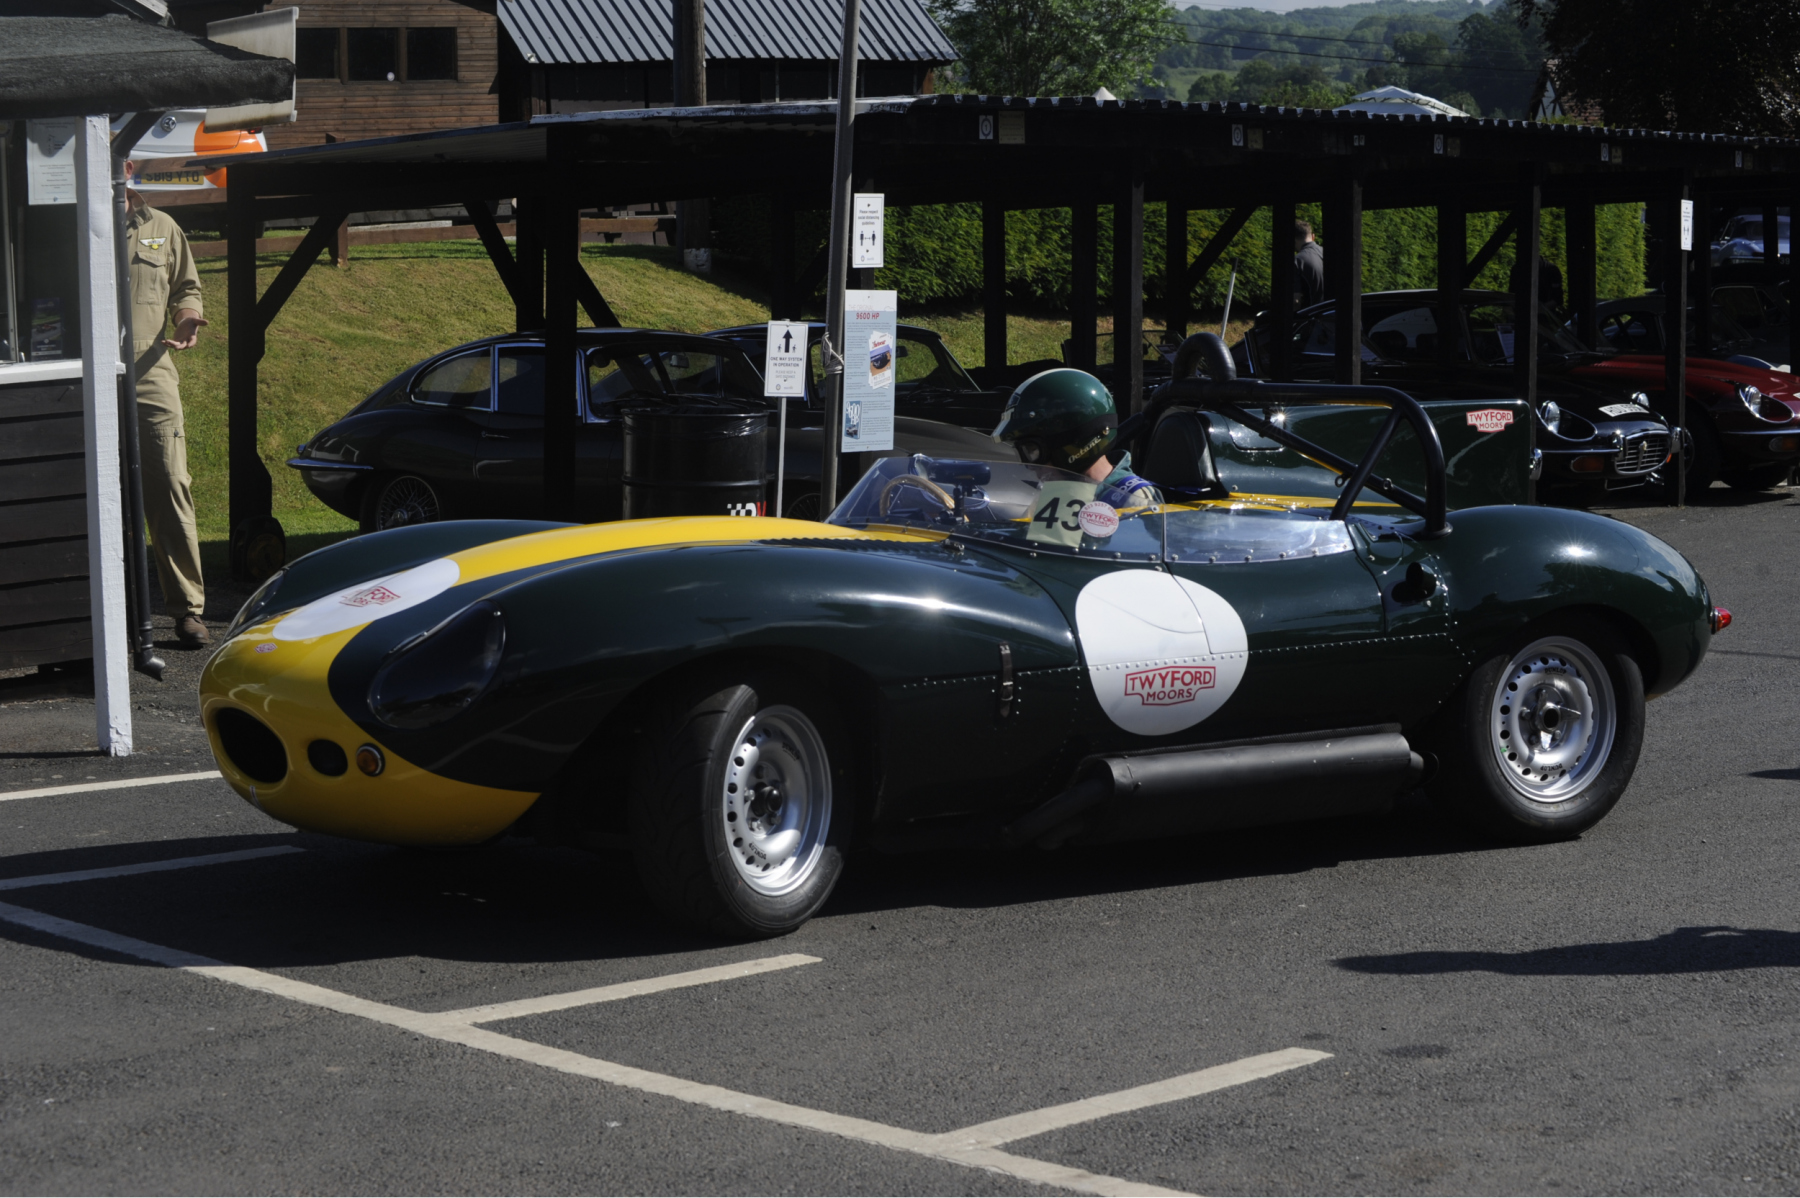 E-type-60-Saturday-photo-by-Abigail-Humphries-67